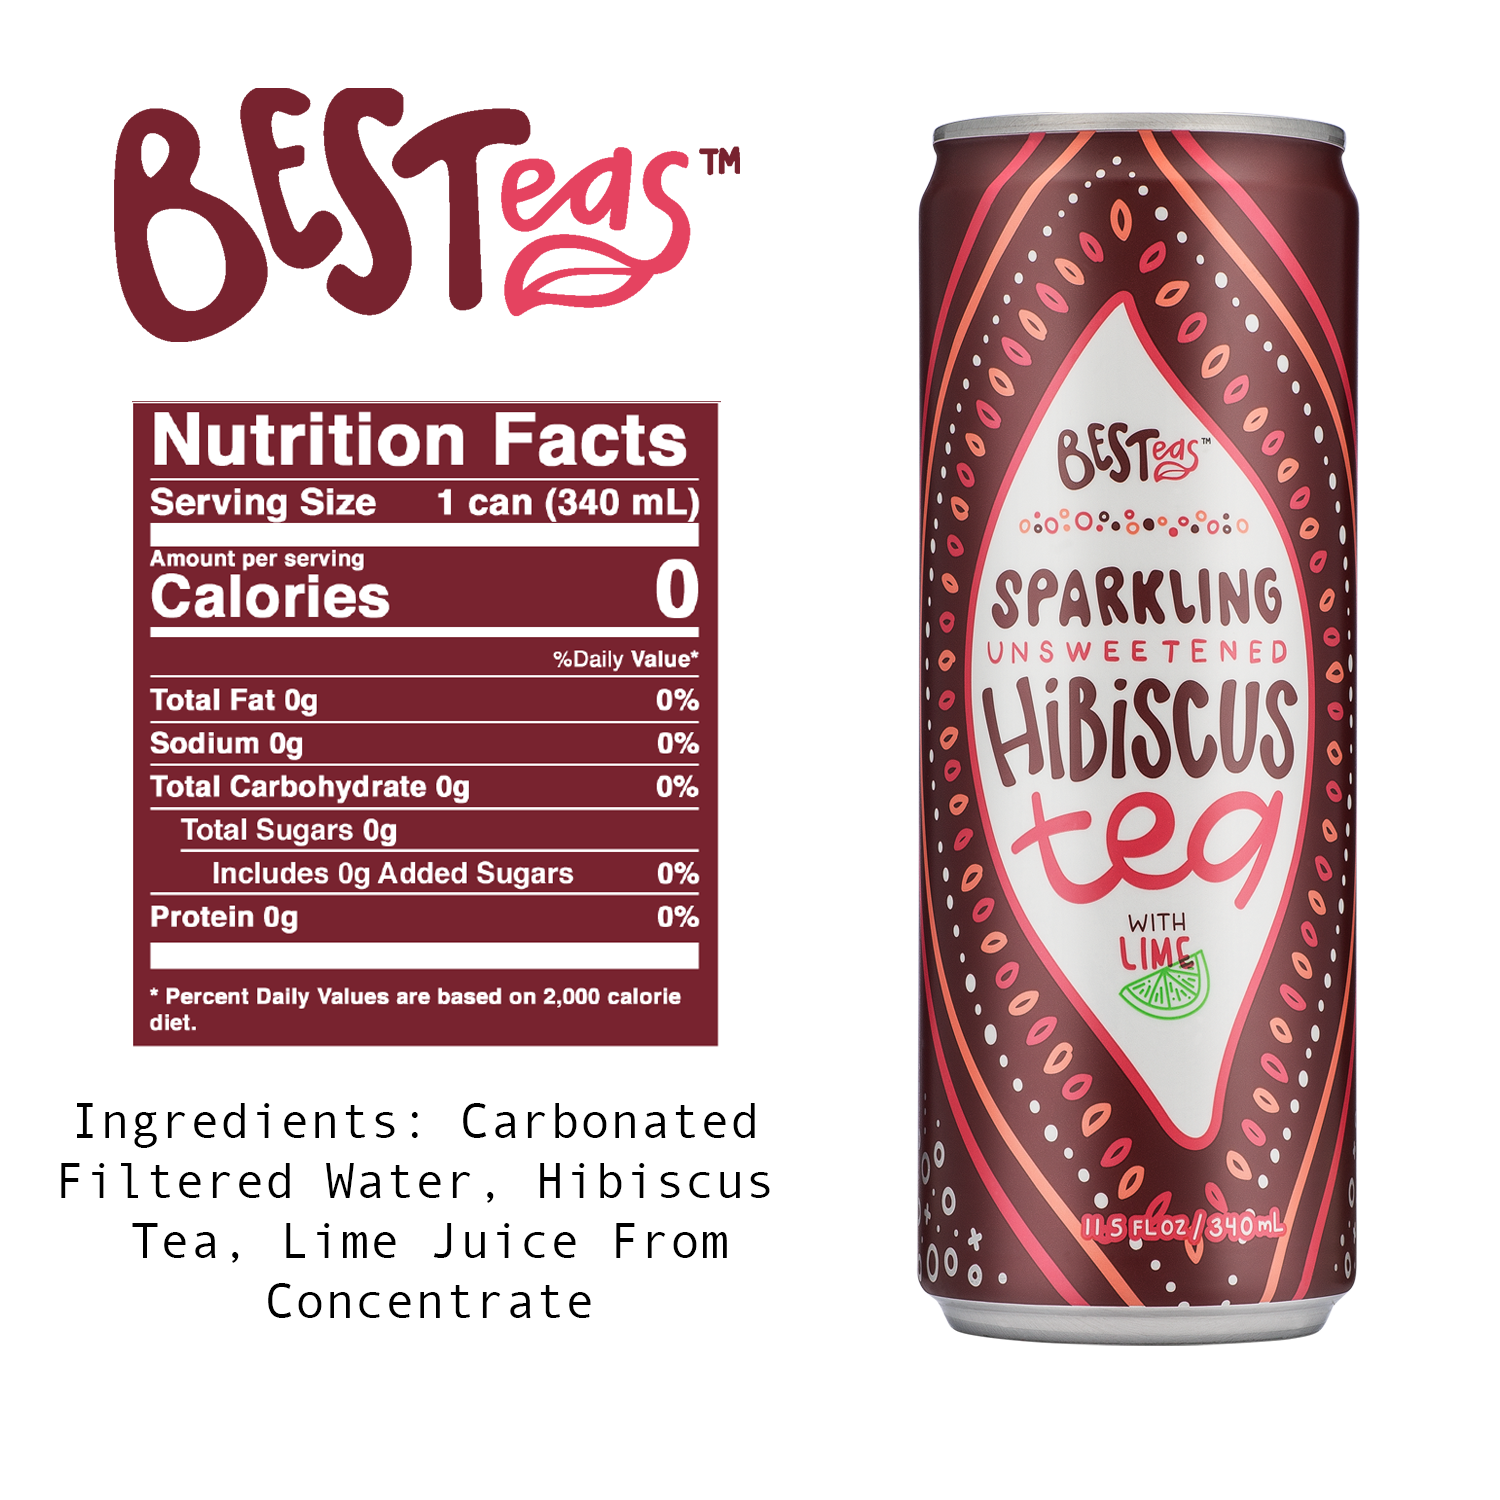 BESTeas Sparkling Unsweetened Hibiscus Tea + Lime 24 Pack (11.5 fl oz cans)